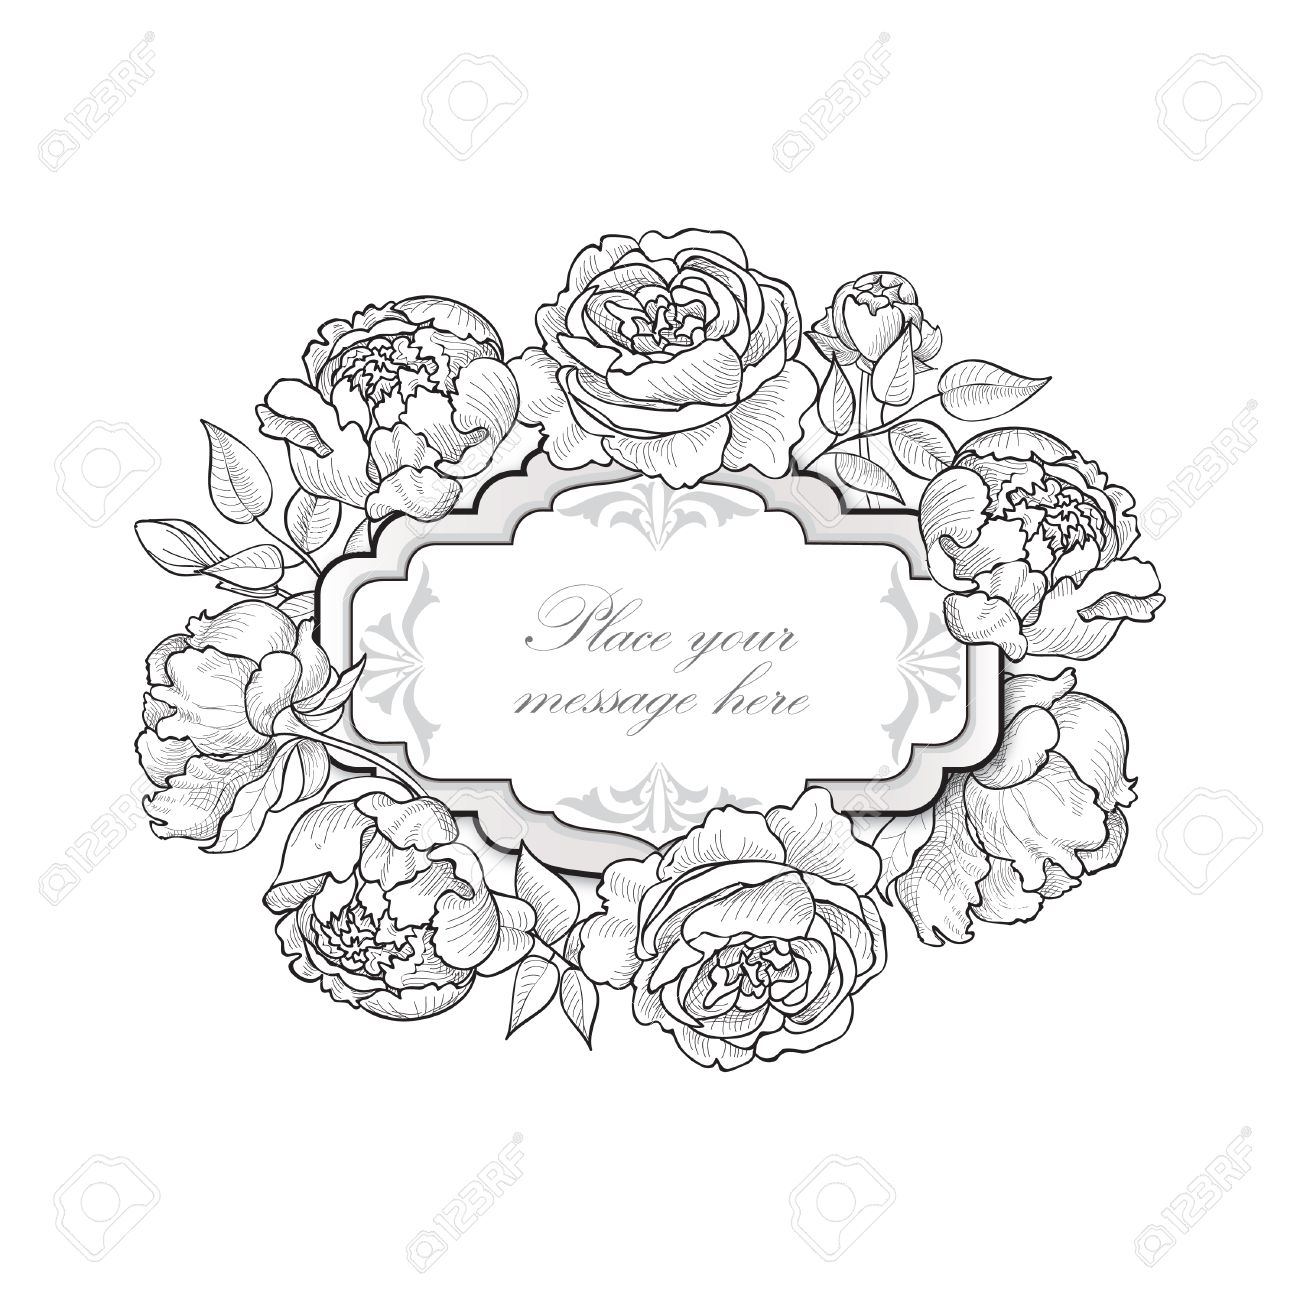 Flower Frame Floral Border Vintage Flourish Background In Victorian Style Stock Vector